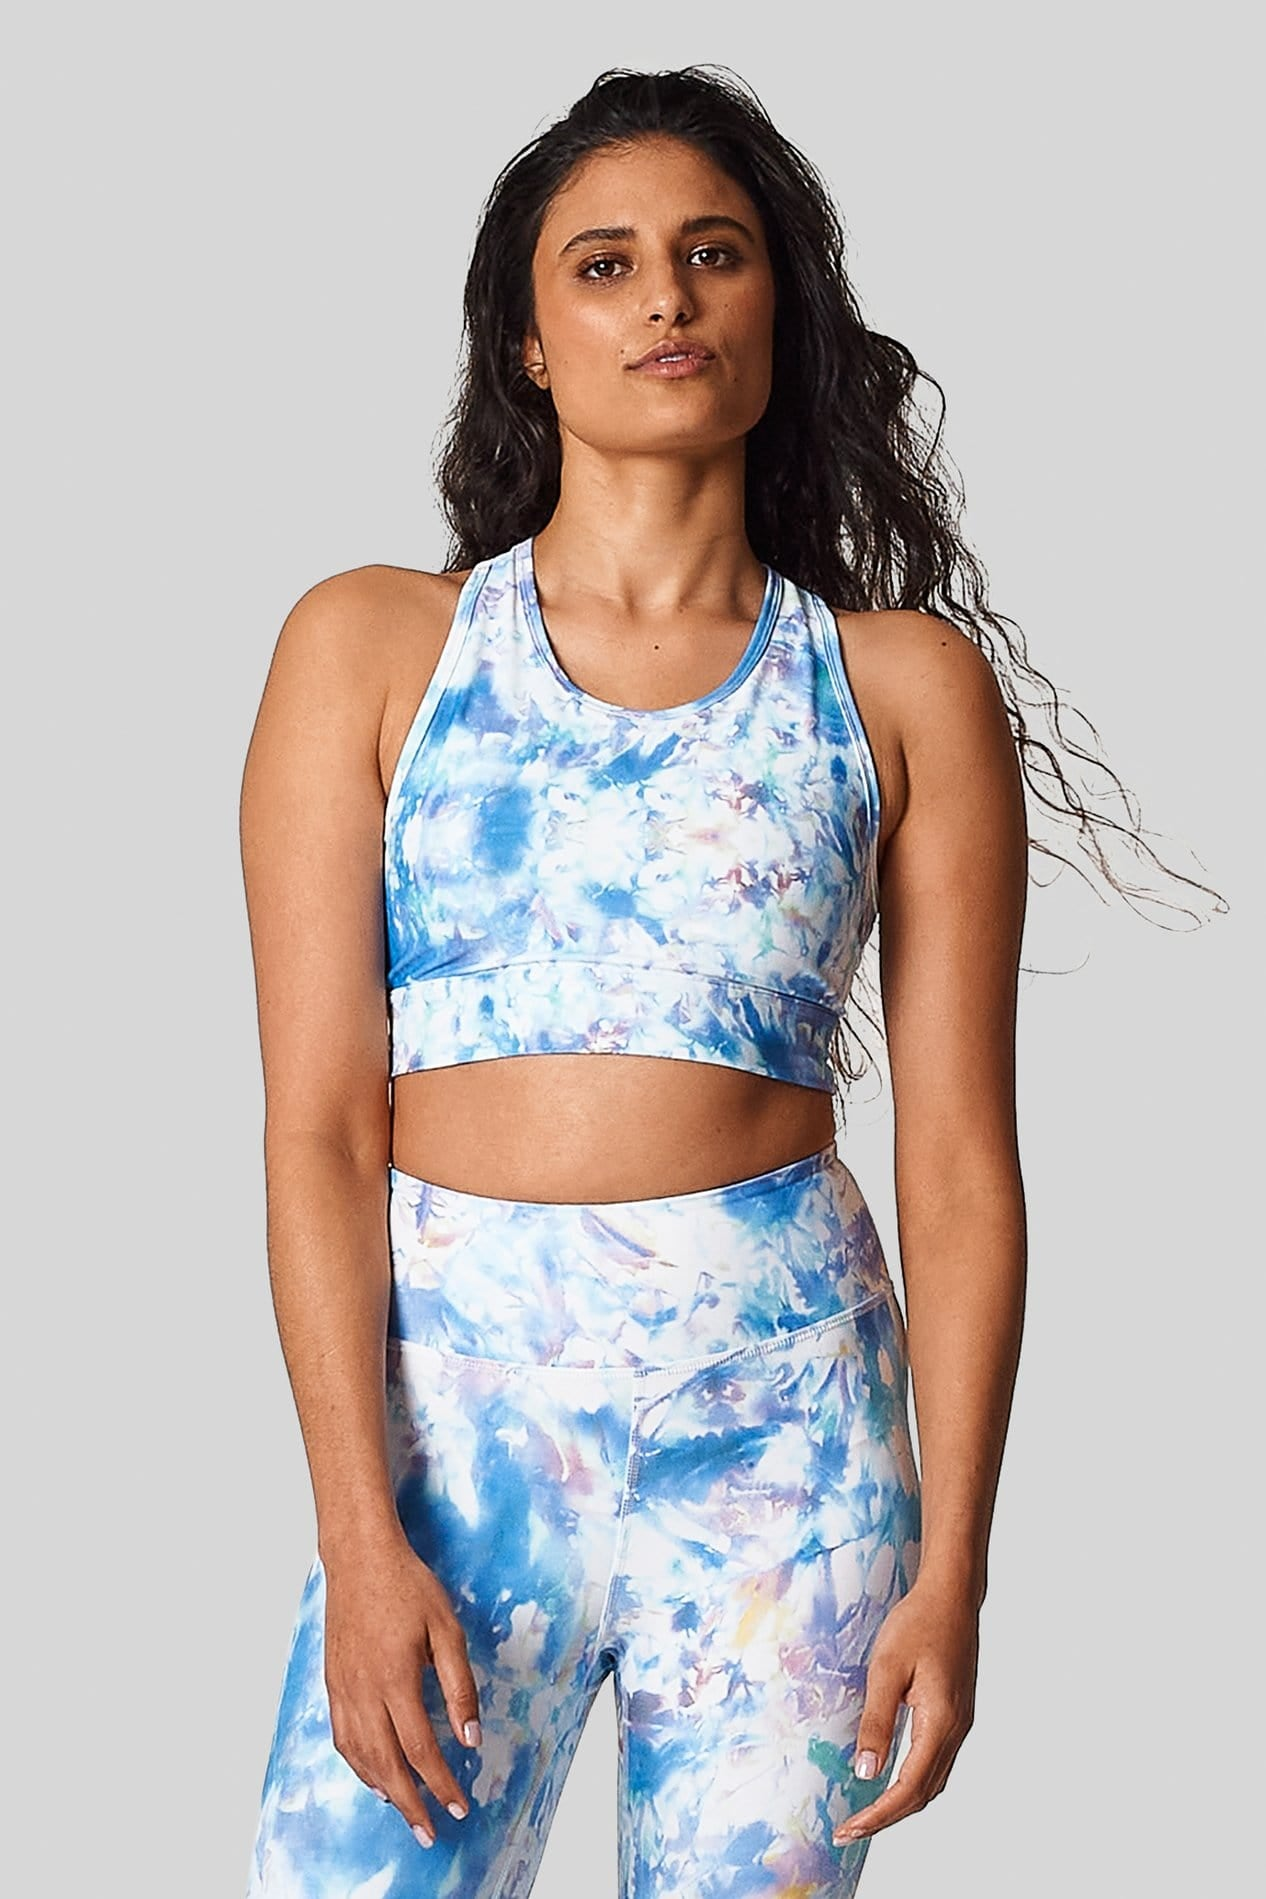 Light blue tie dye activewear set on a girl with brown hair.